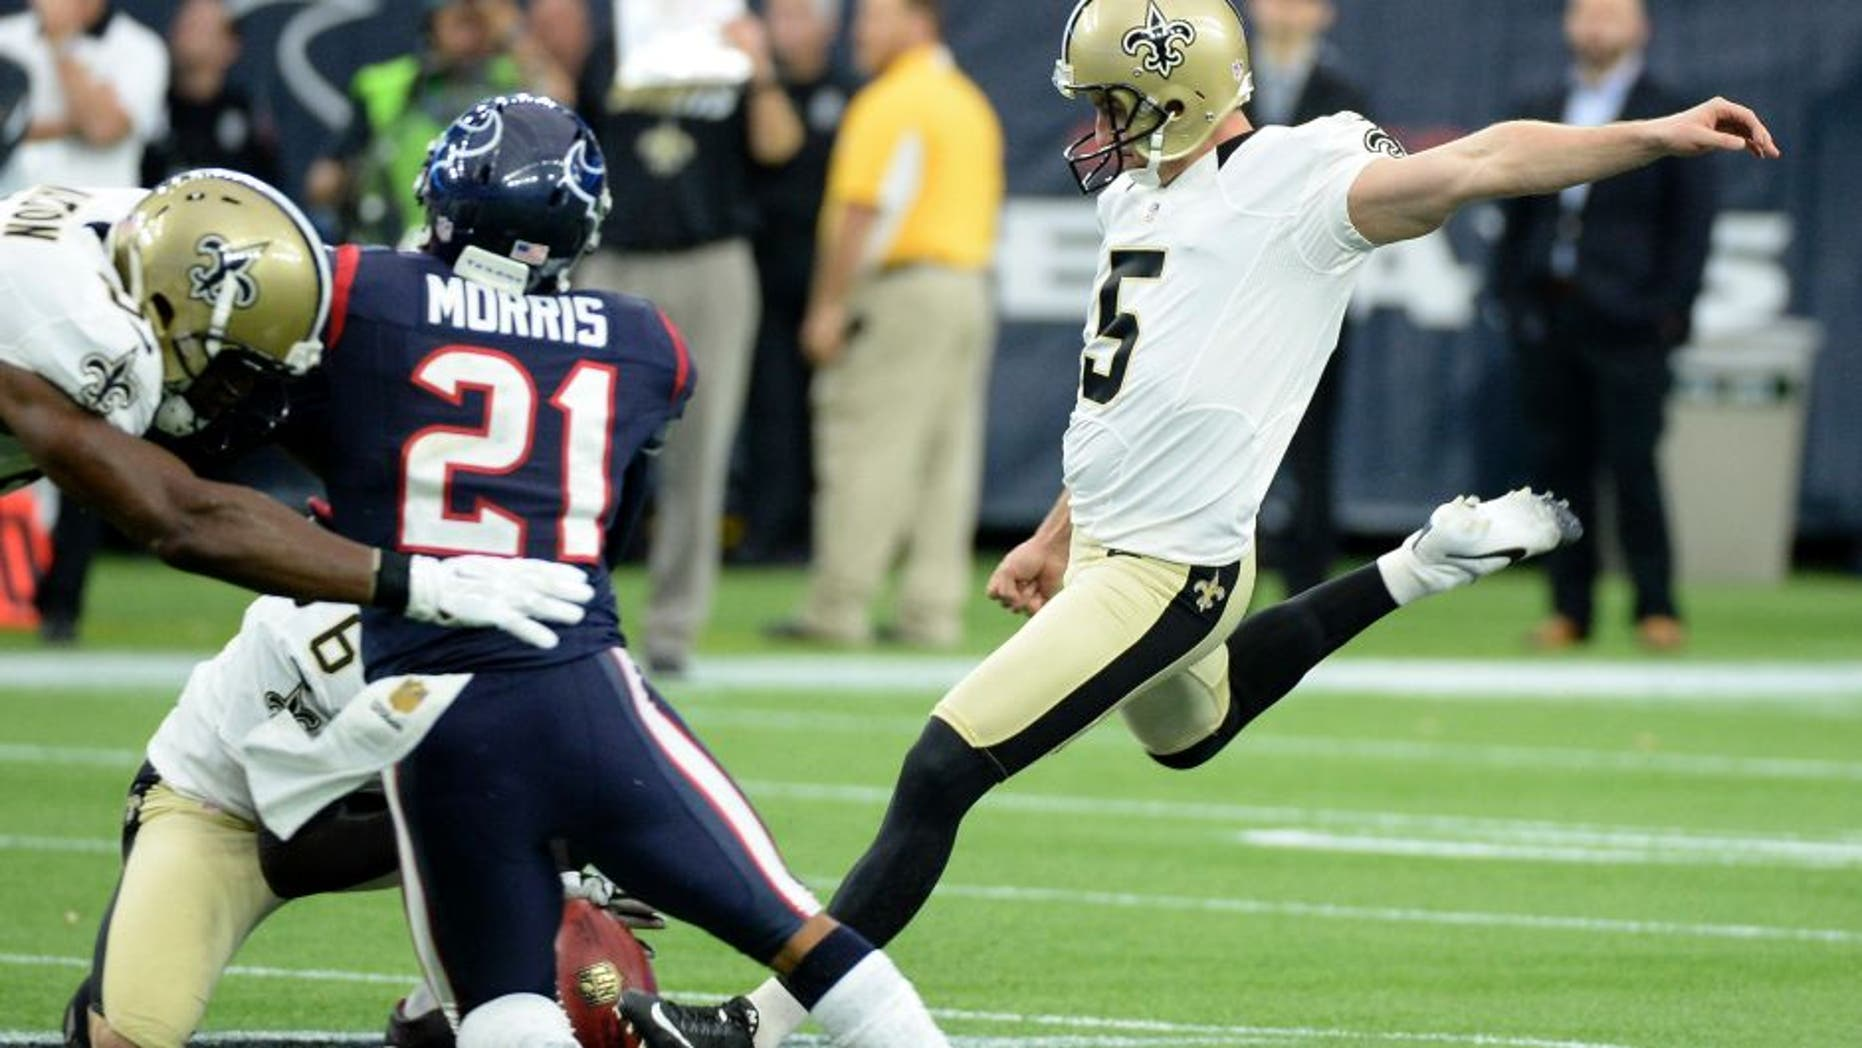 FILE - In this Nov. 29, 2015, file photo, then-New Orleans Saints kicker Kai Forbath (5) kicks a 57-yard field goal during the second quarter of an NFL football game against the Houston Texans, in Houston. Another loss has triggered another round of changes for Minnesota, with new kicker Kai Forbath leading the list as the Vikings try to stop their freefall by letting the struggling Blair Walsh go.(AP Photo/George Bridges, File)